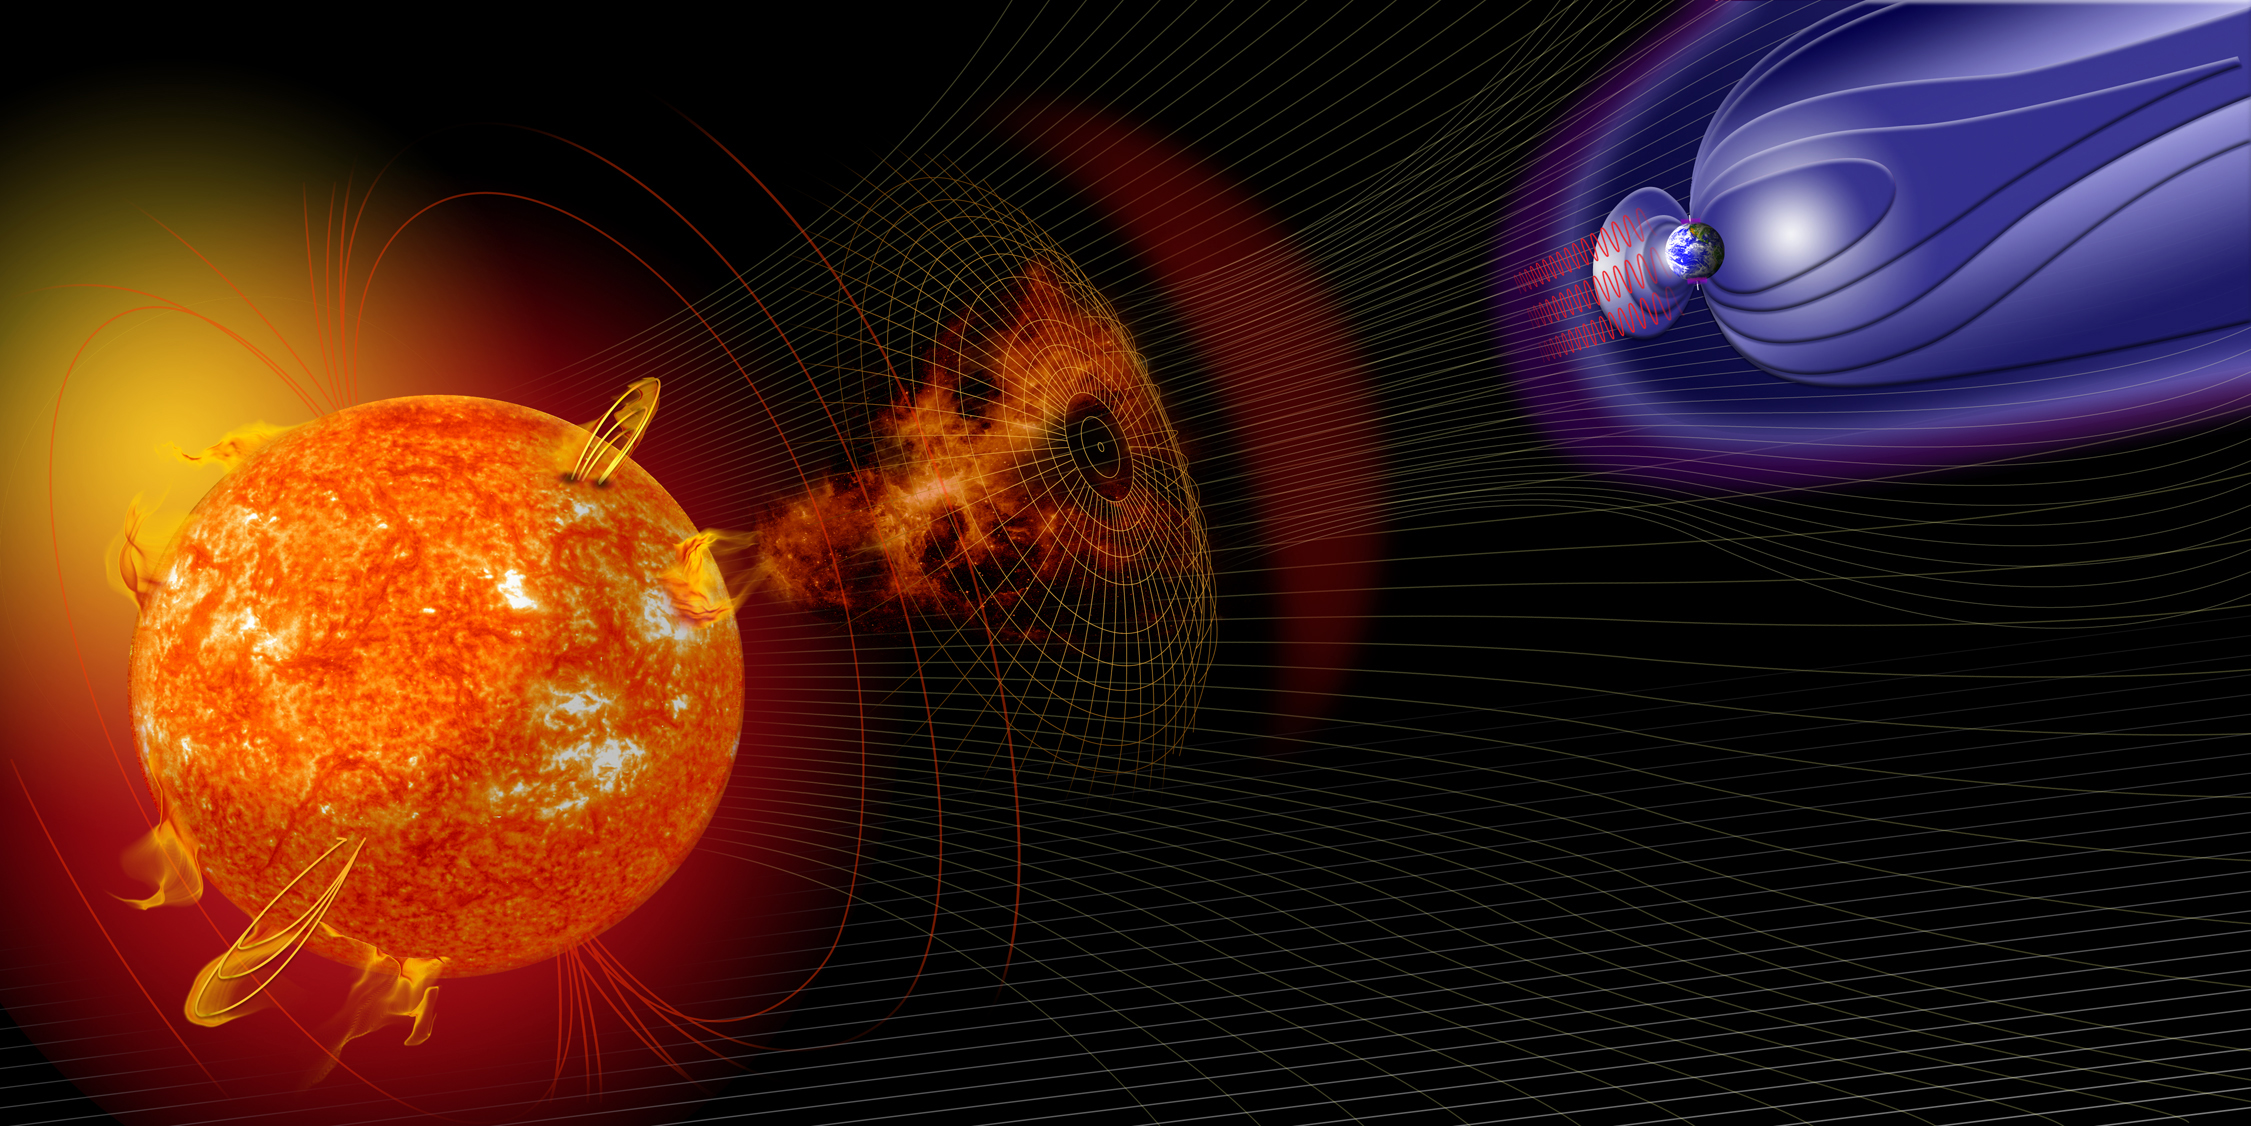 Heliophysics is the study of the Sun and its interactions with Earth